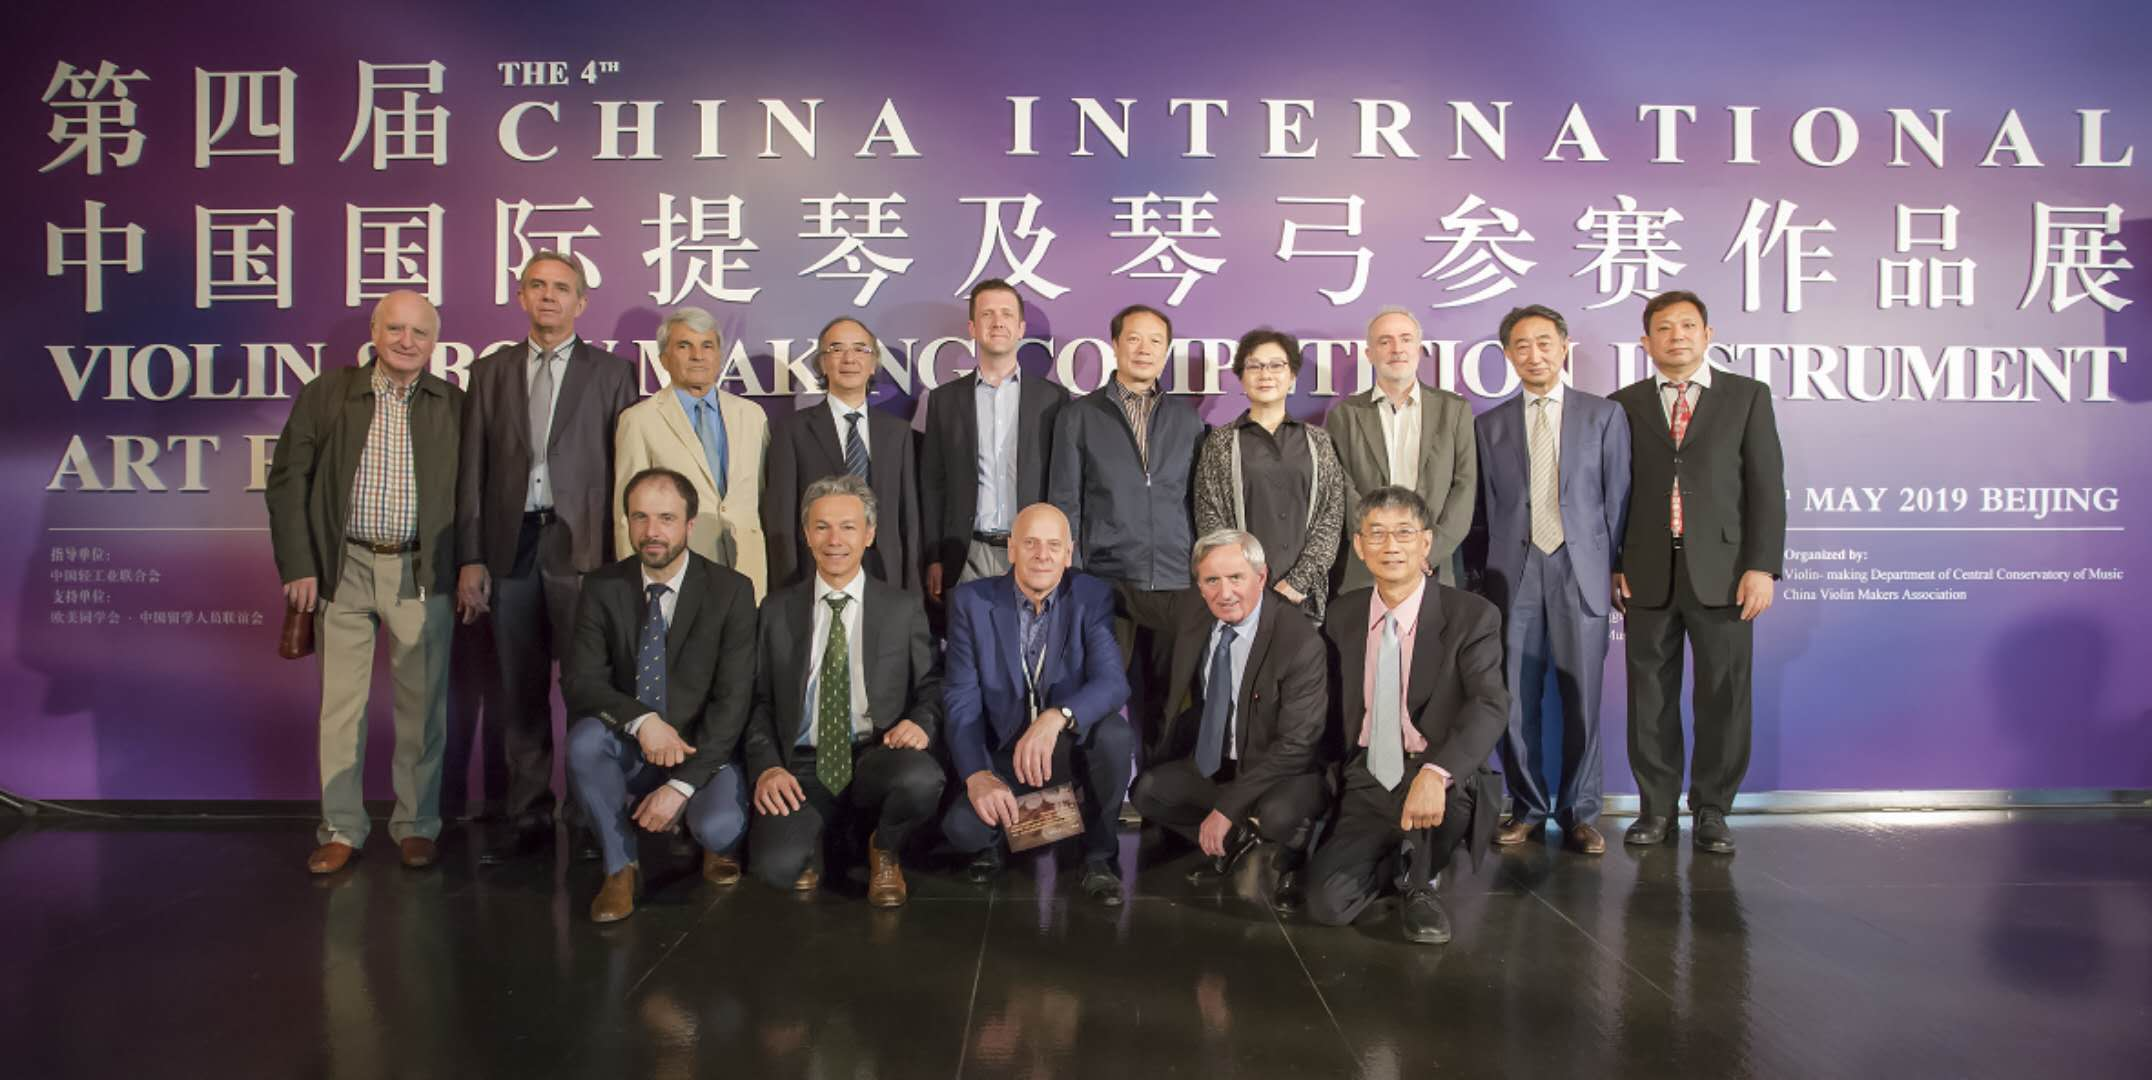 Jurors and invited guests of the 4th China International Violin and Bow Making Competition in Beijing.